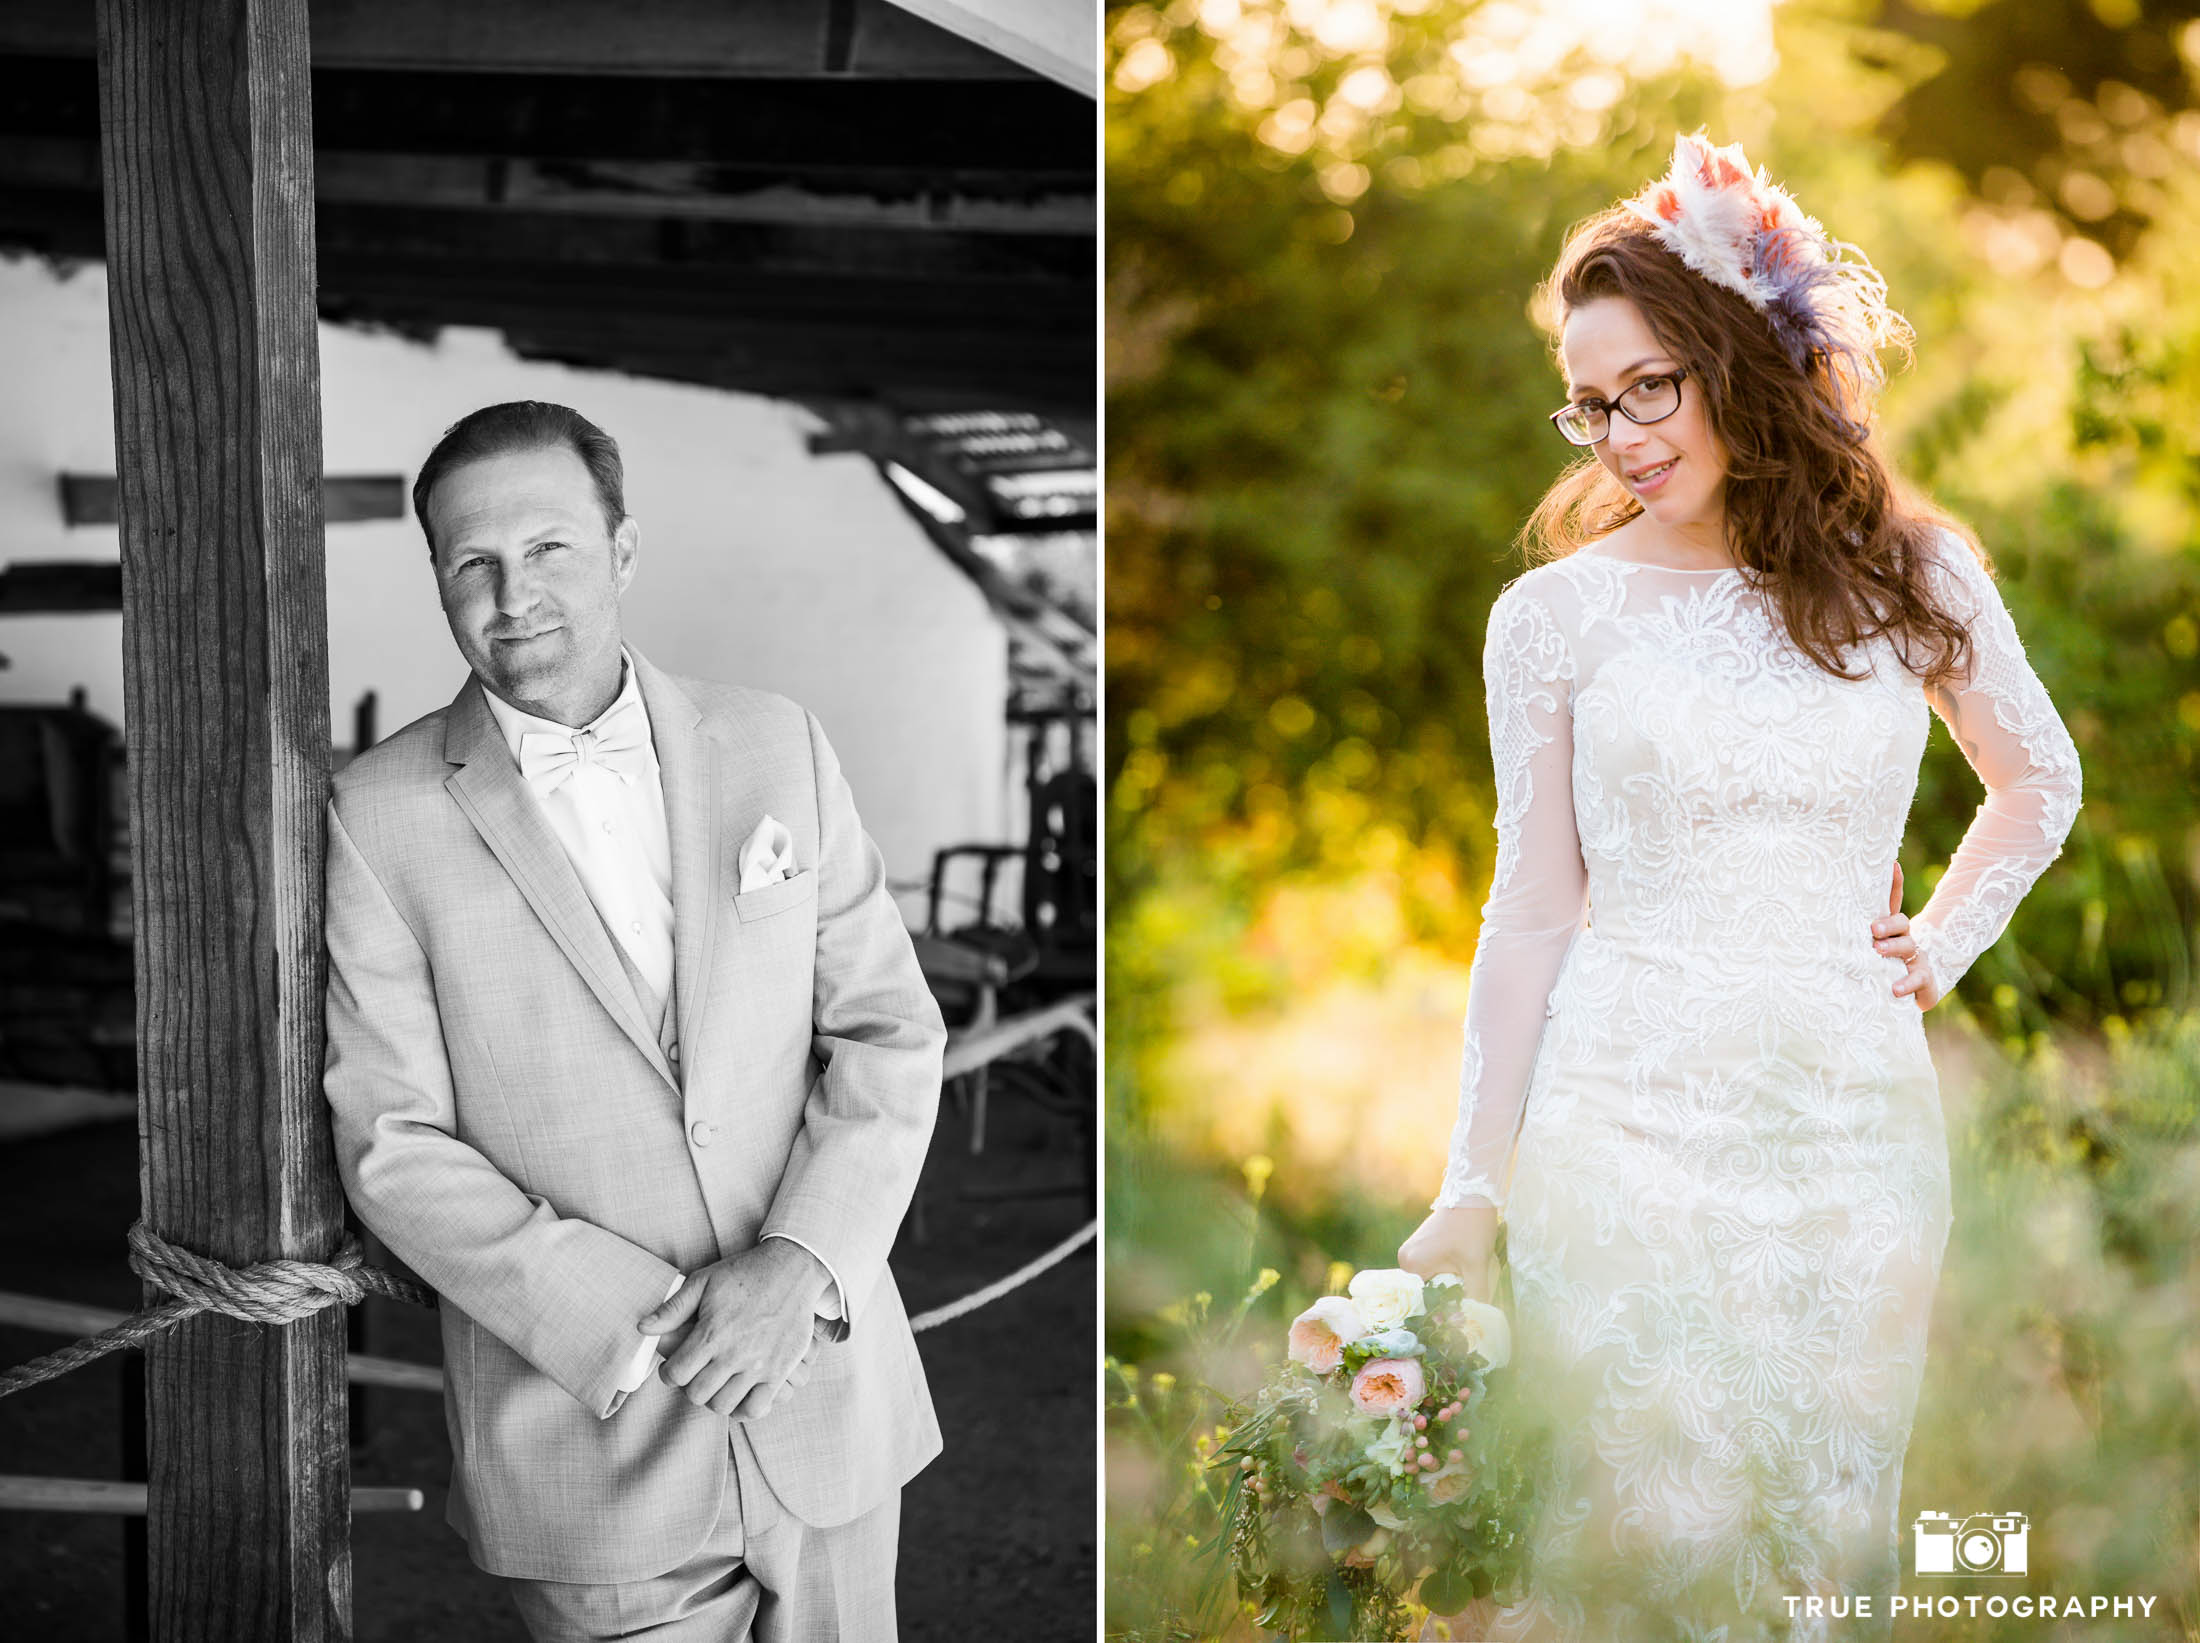 Solo photos of Bride and Groom during rustic wedding at spanish-style ranch